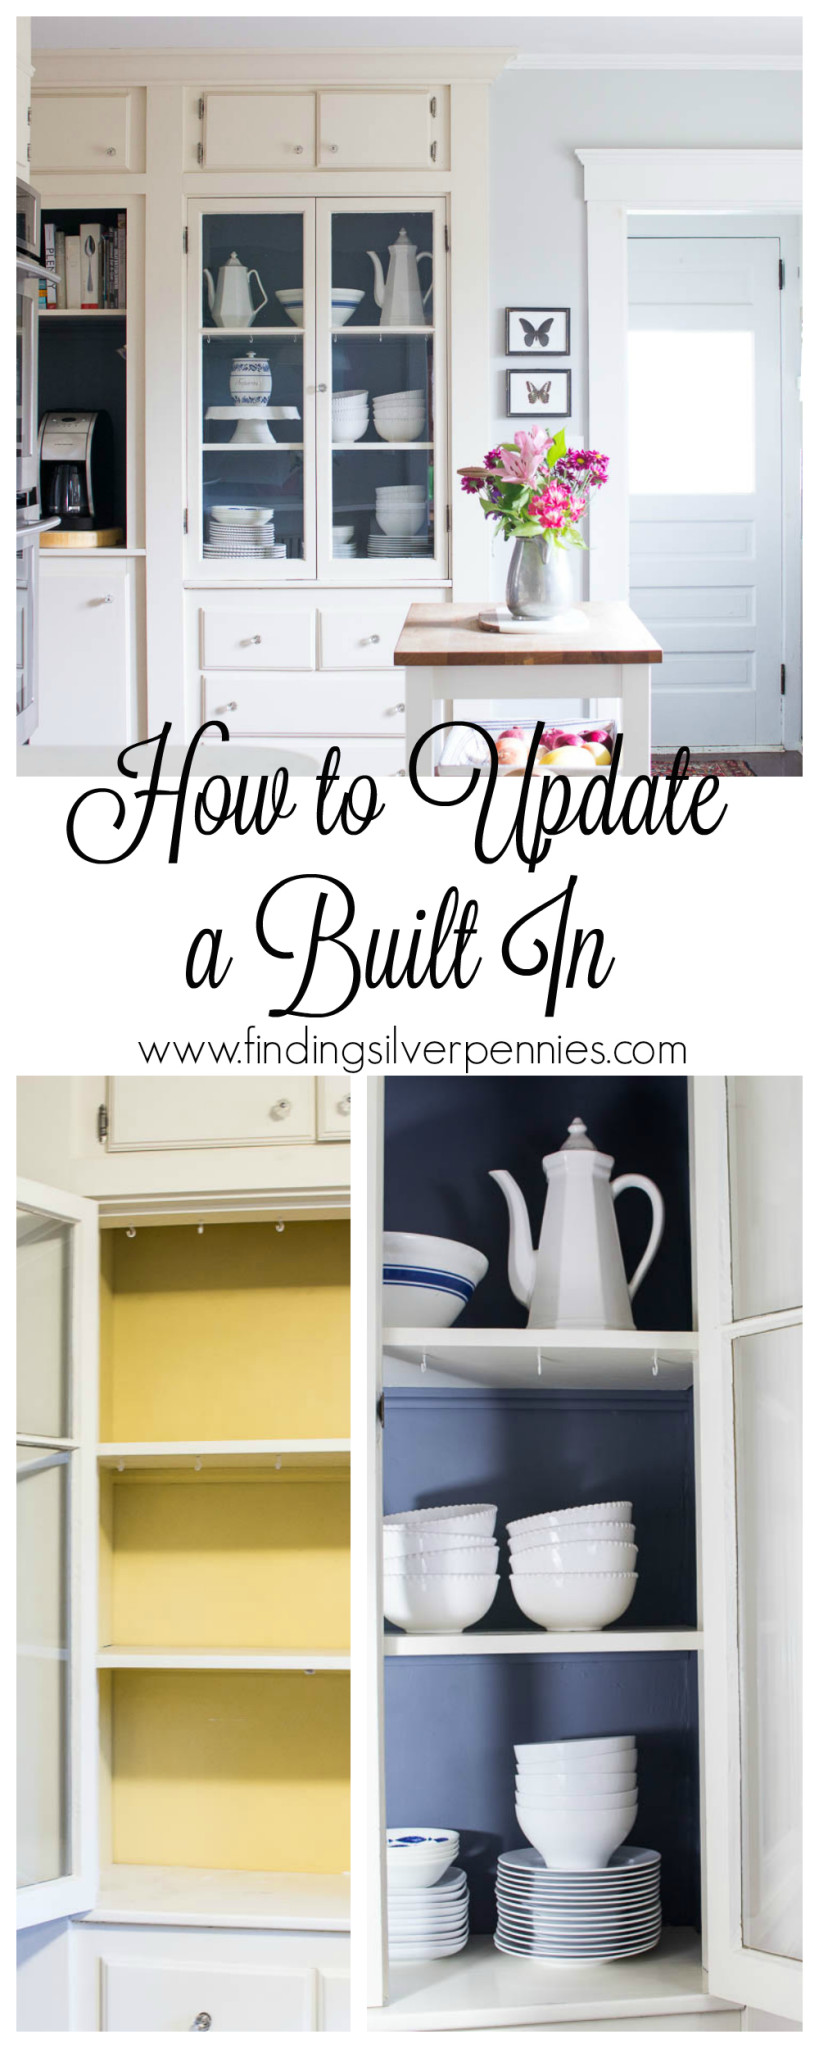 How to Update a Built In